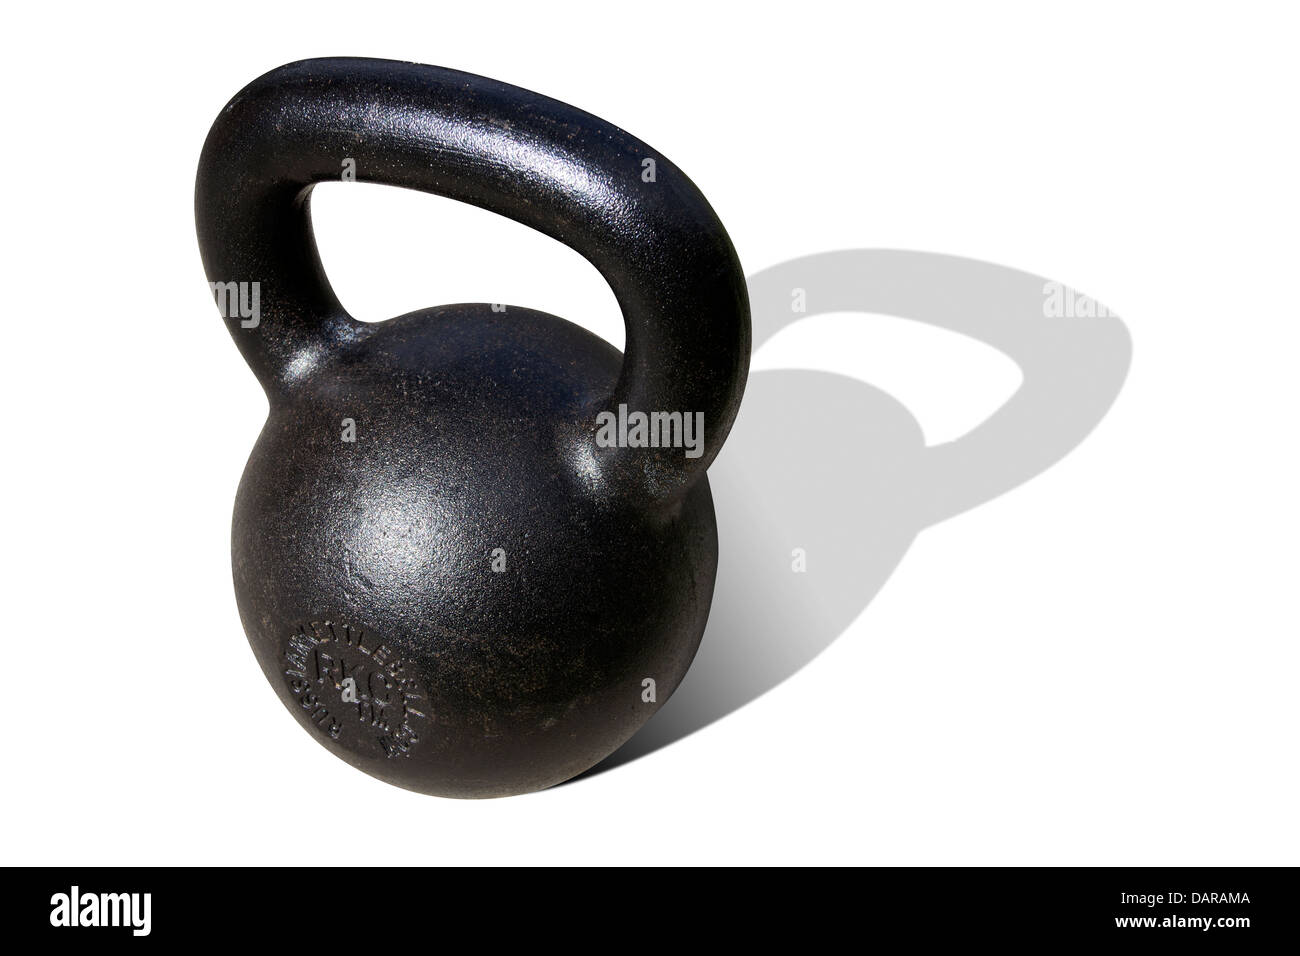 Thick Handle kettlebell - an amazing strength and conditioning tool isolated on a white background - Stock Image